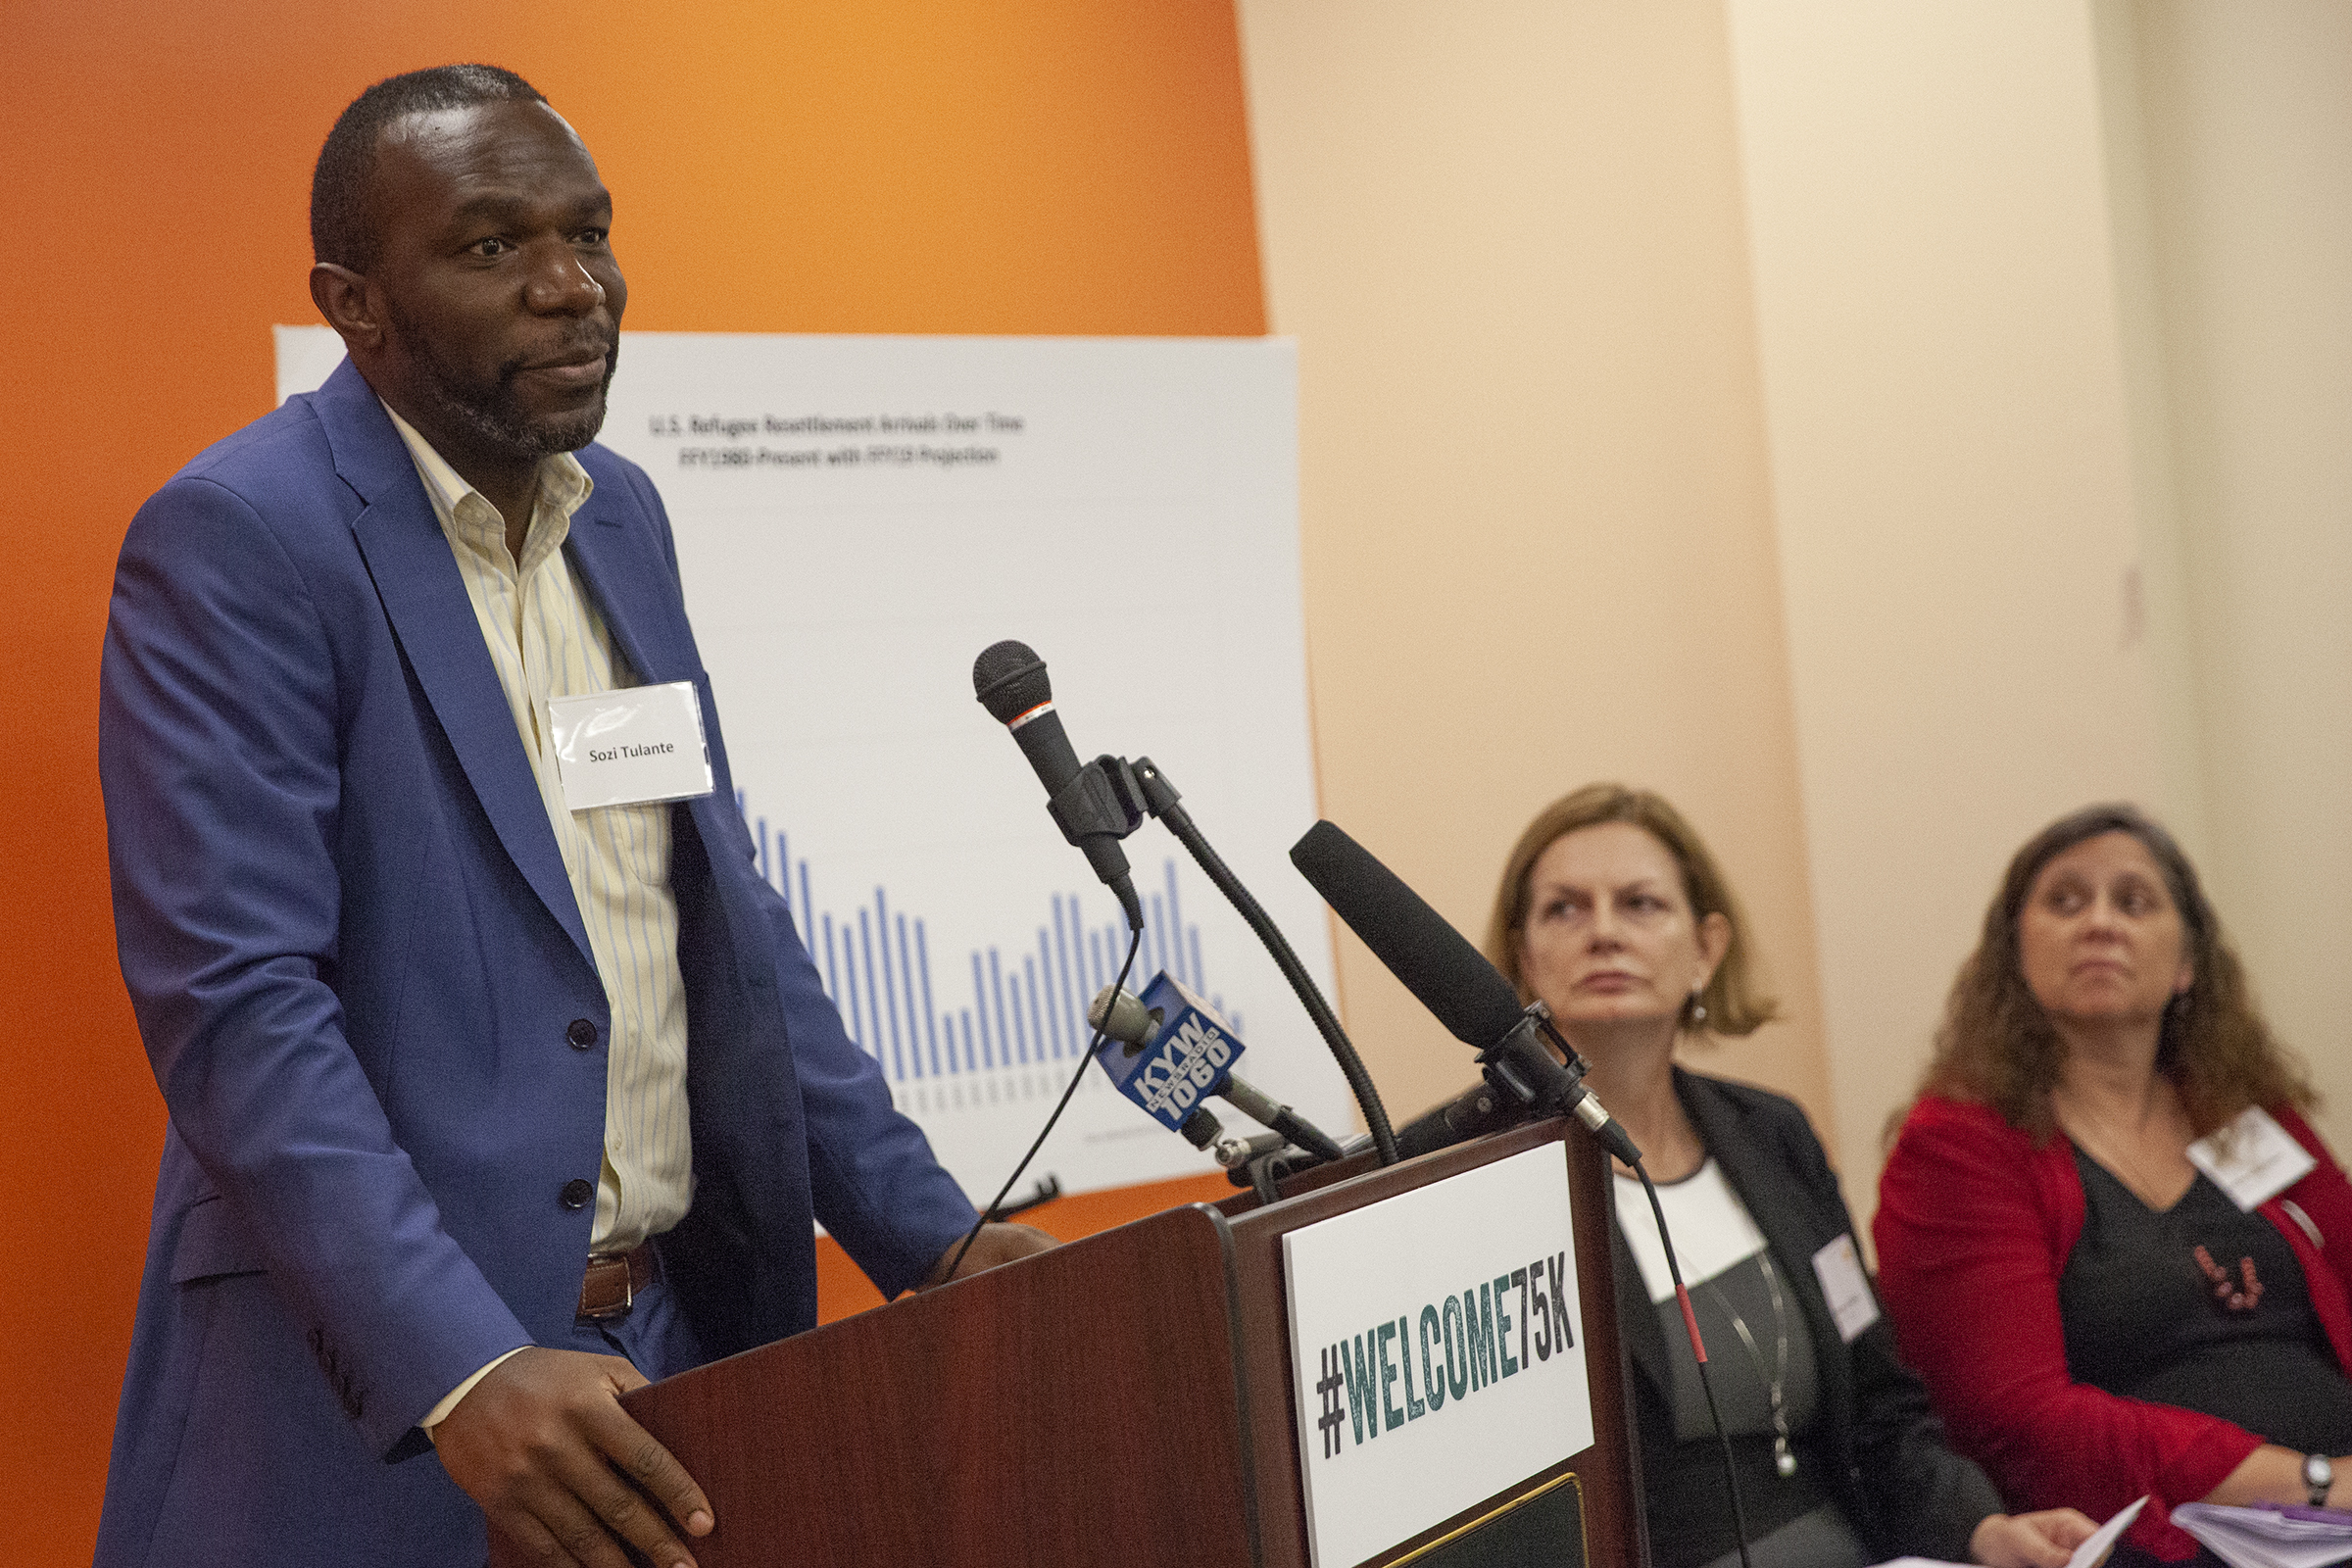 Sozi Pedro Tulante, who teaches at the University of Pennsylvania Law School, was a political refugee from what is now the Democratic Republic of Congo. He speaks during an event held to discuss the lowering of refugee admissions to the U.S.